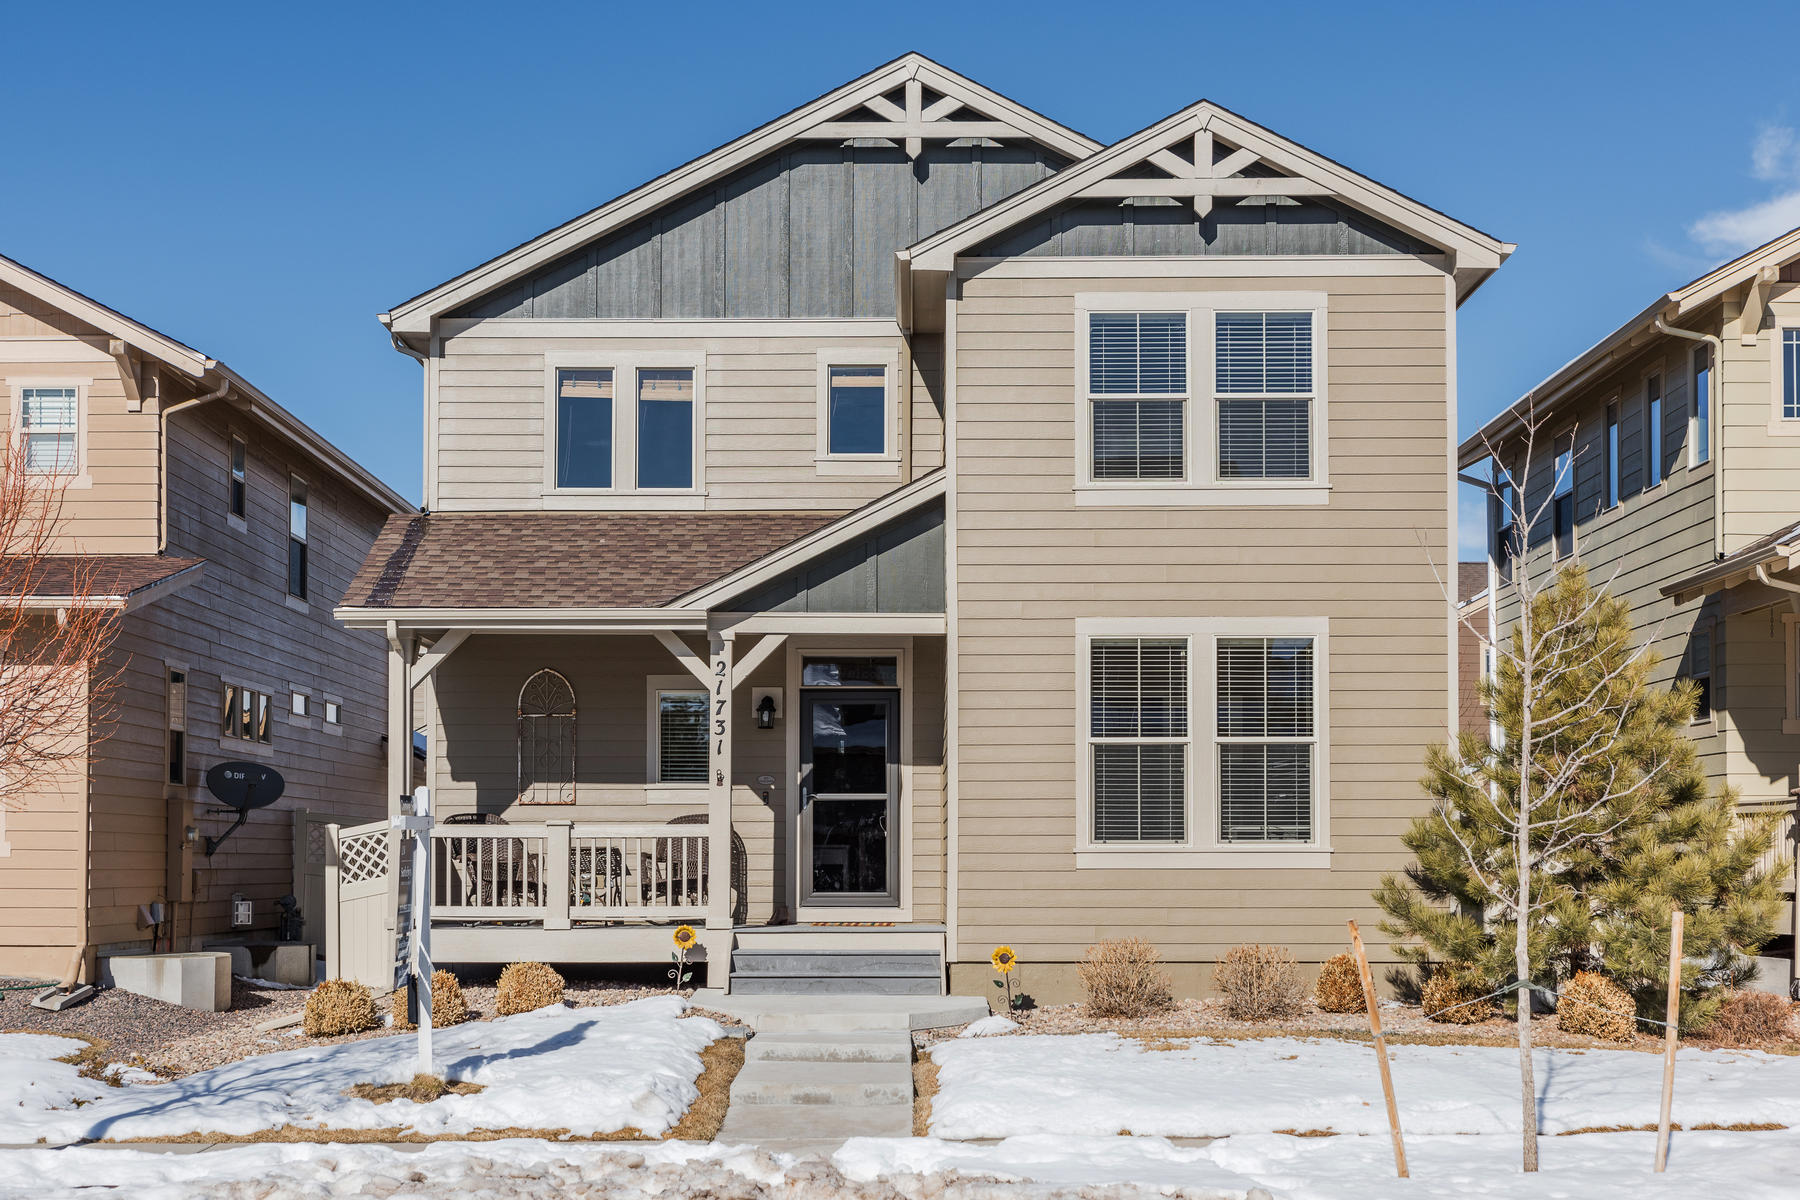 Single Family Homes for Sale at In desirable Idyllwilde 1 block from neighborhood pool, clubhouse & coffee shop. 21731 E Tallkid Avenue Parker, Colorado 80138 United States